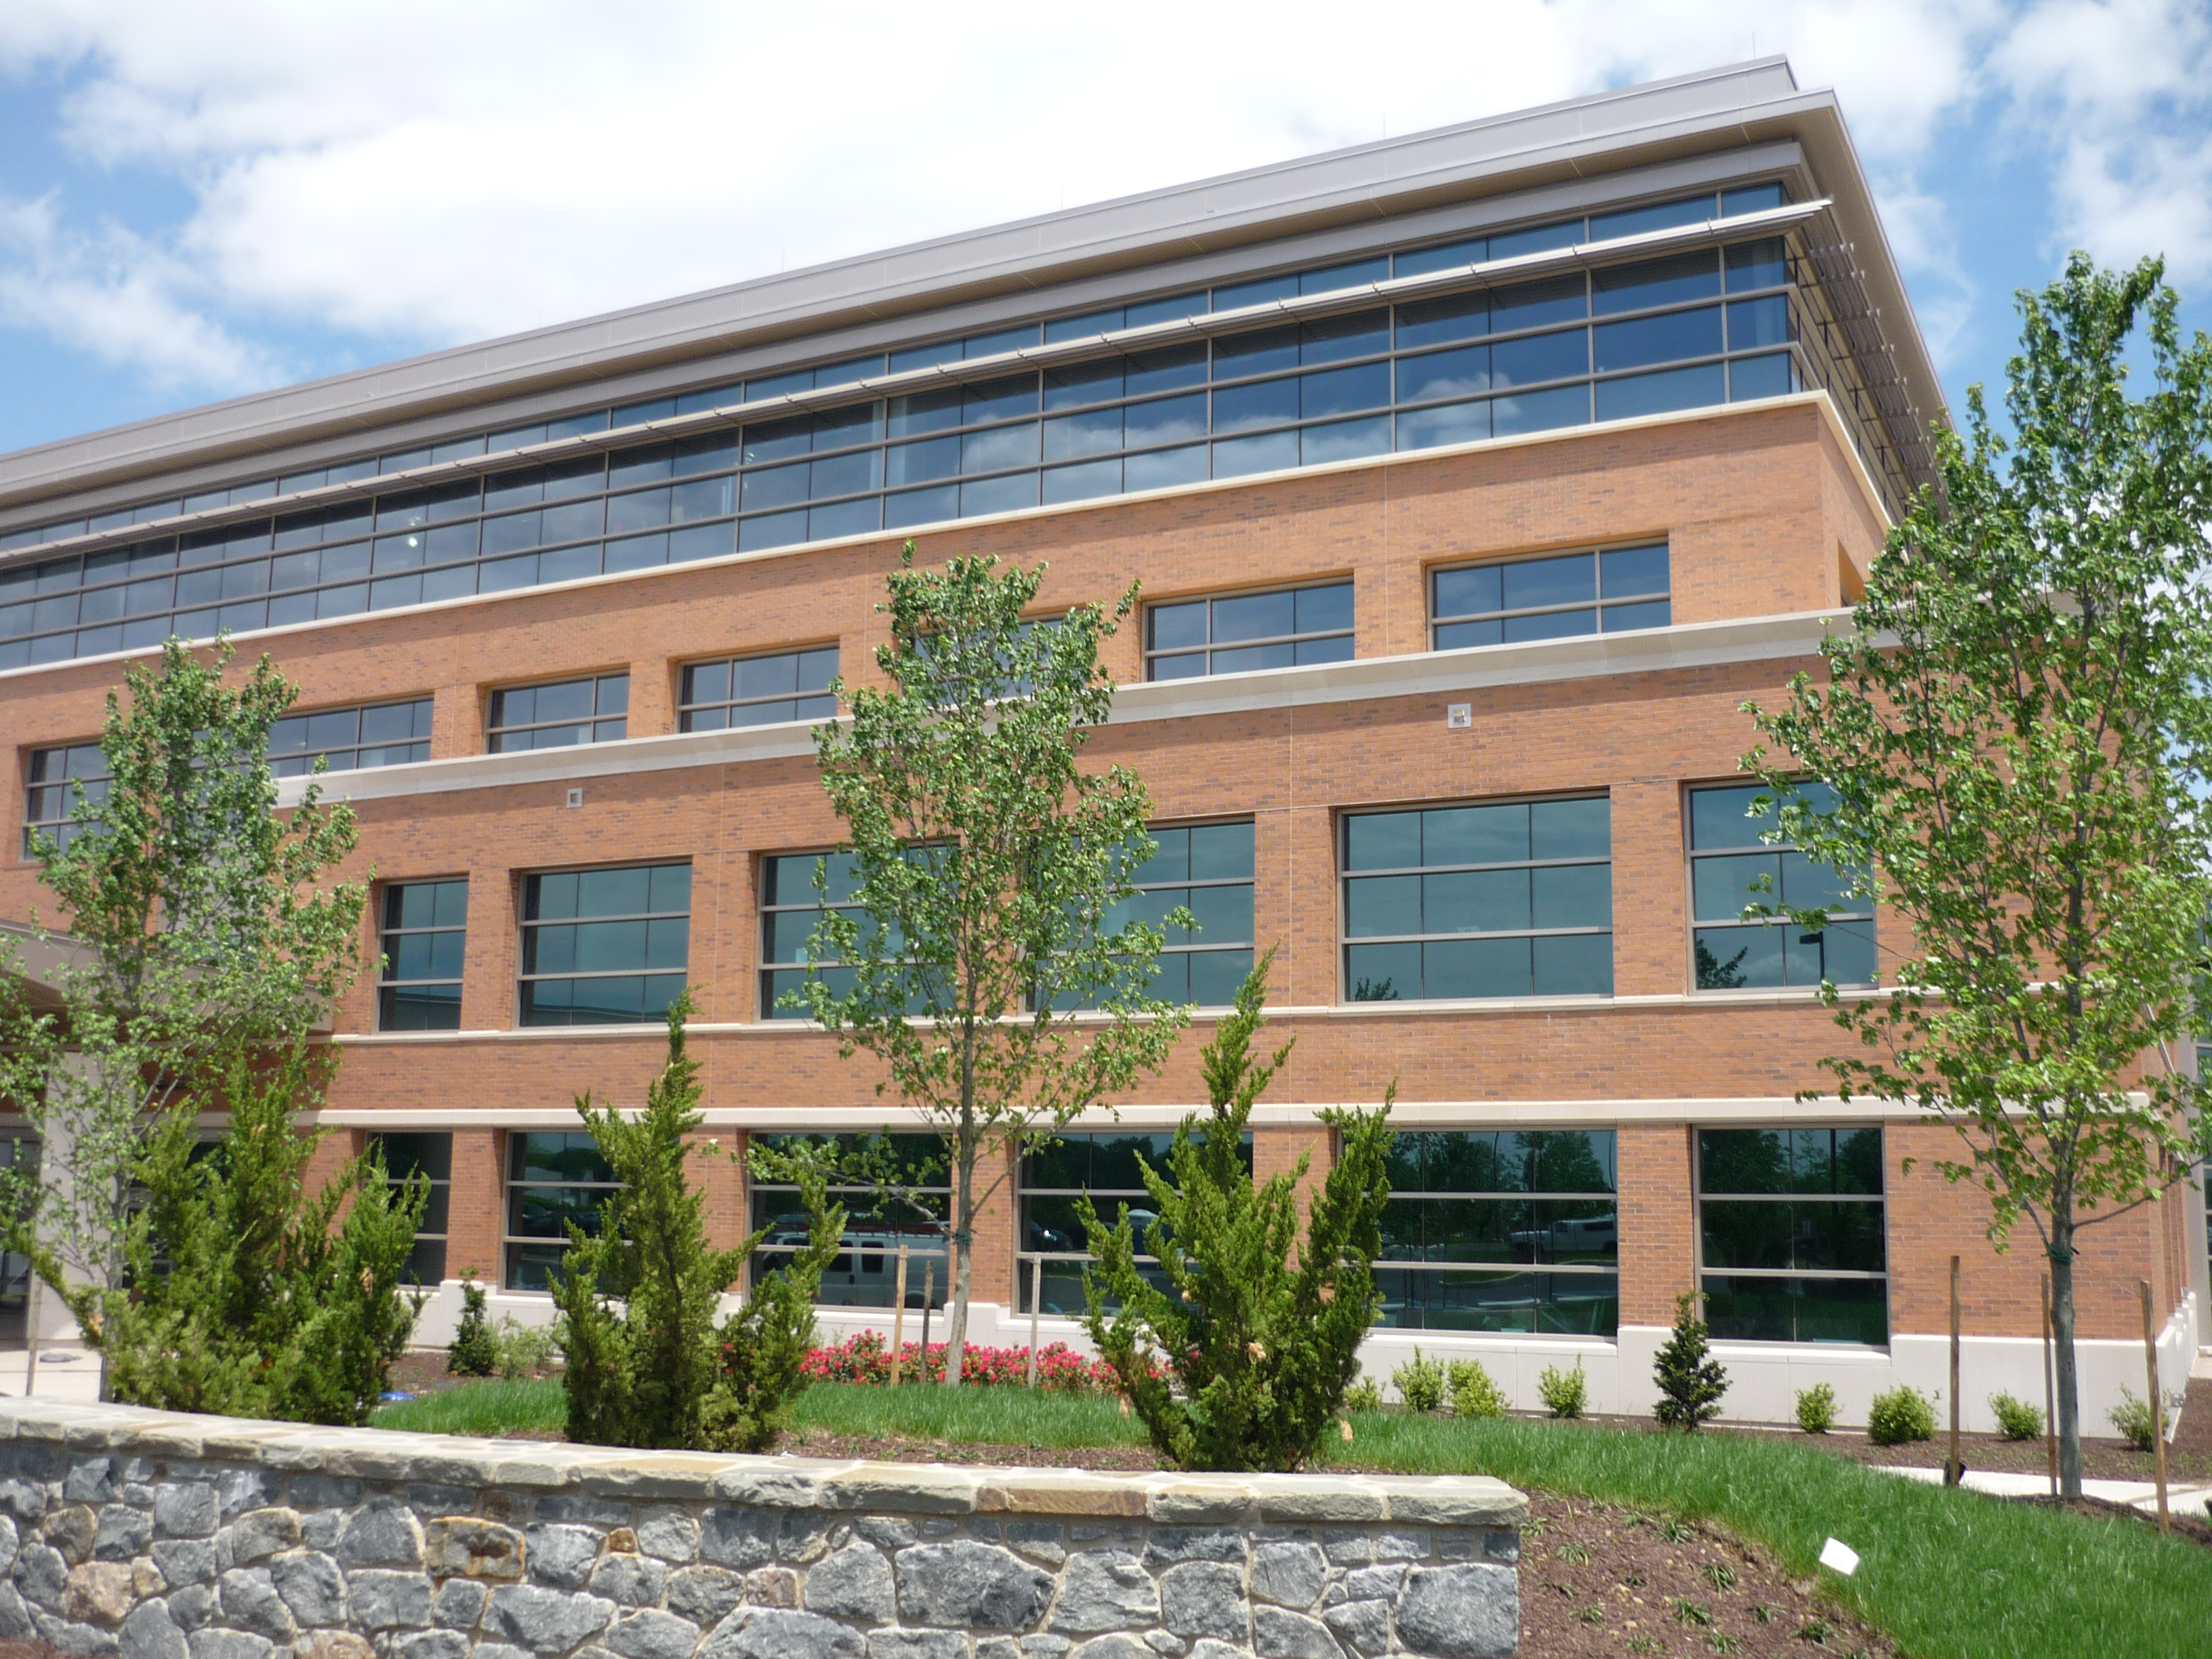 2009_Cancer_Ctr_Expansion (49)